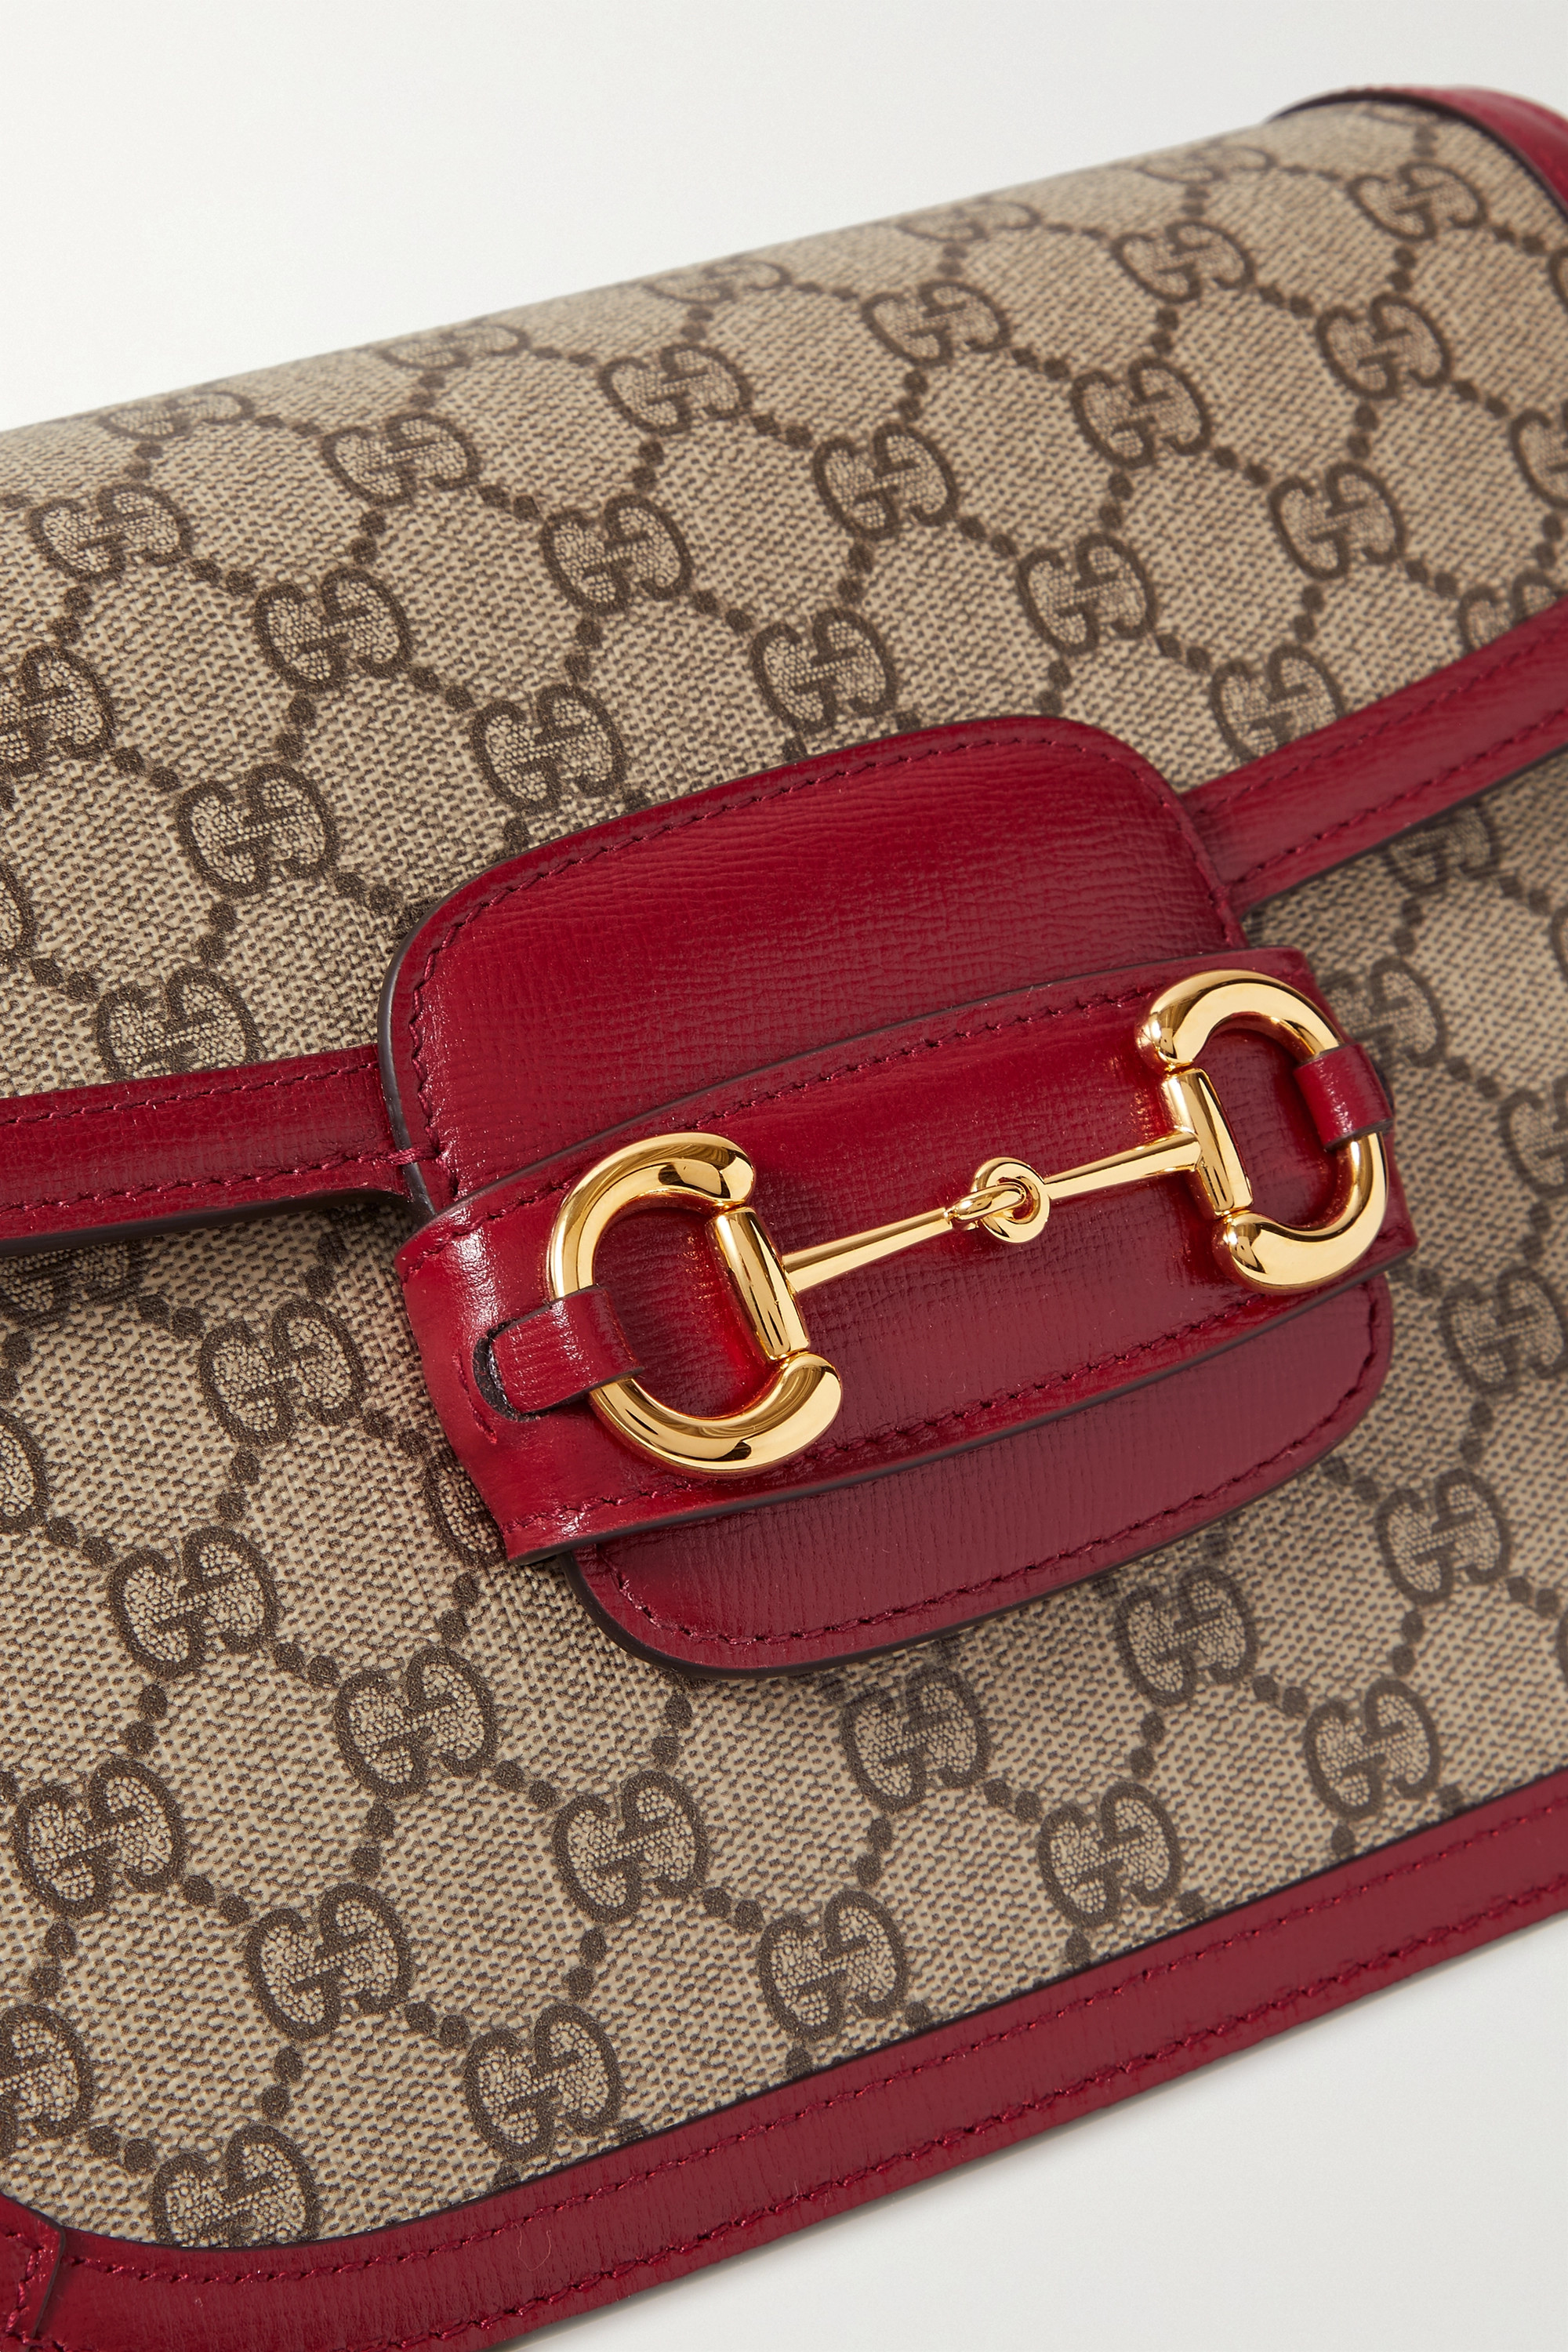 Gucci 1955 horsebit-detailed leather-trimmed printed coated-canvas shoulder bag